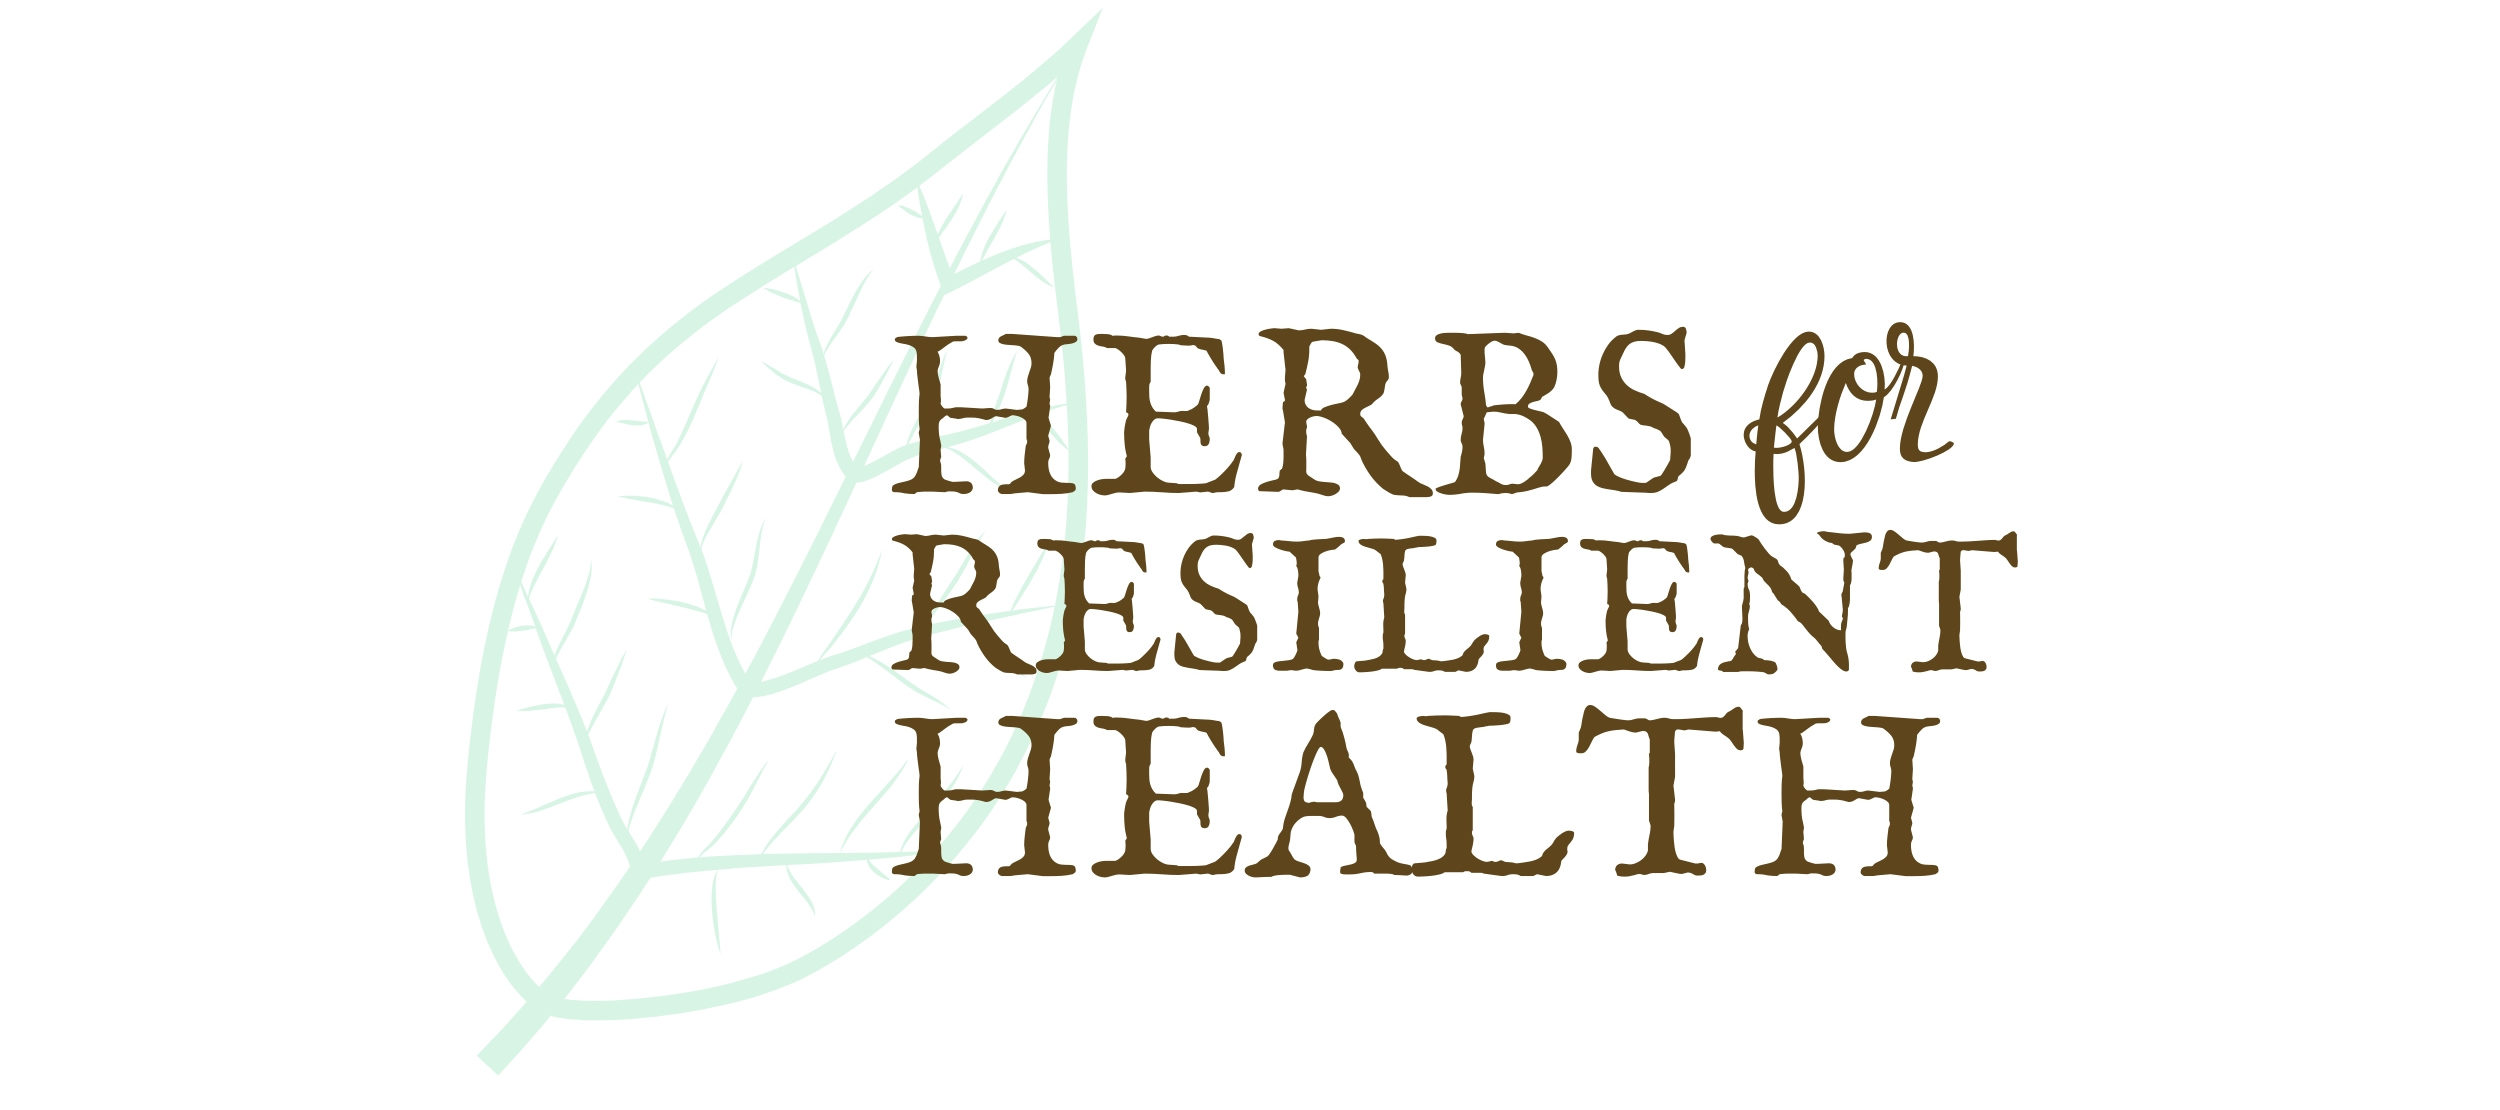 Herbs for Resilient Health